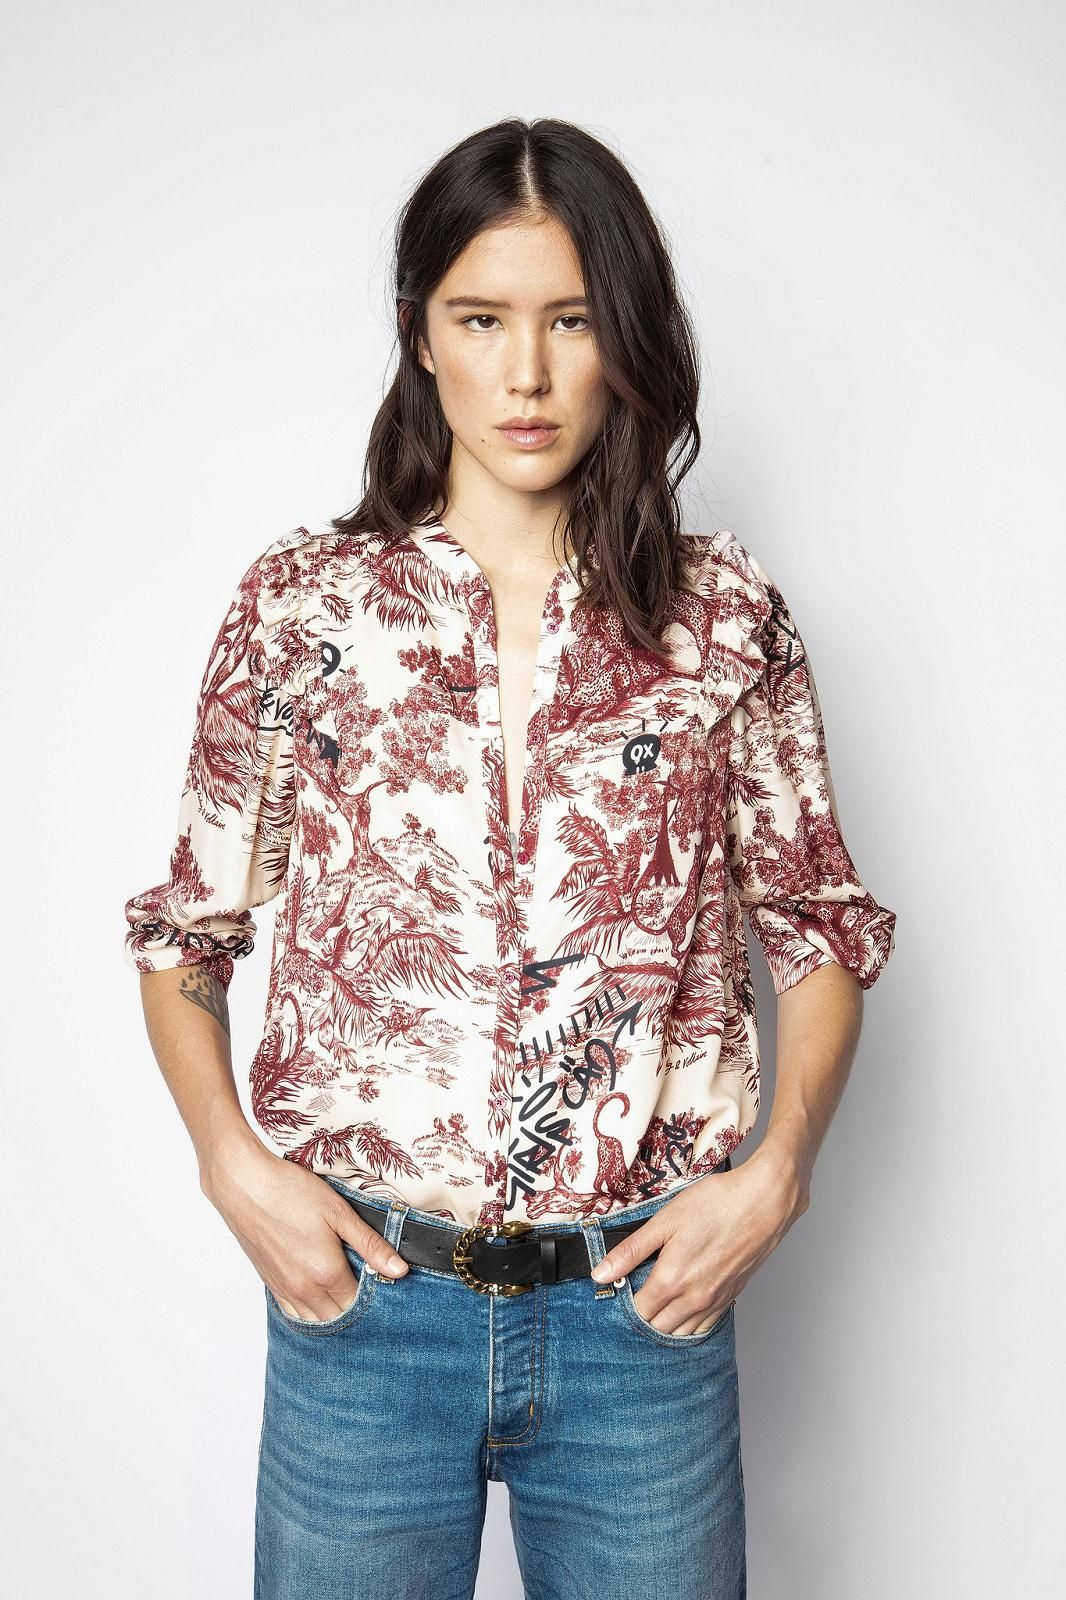 Zadig&Voltaire top Beige femmes (Zadig-Top satin motif Jouy - TYGG top satin beige/bordeaux) - Marine | Much more than shoes